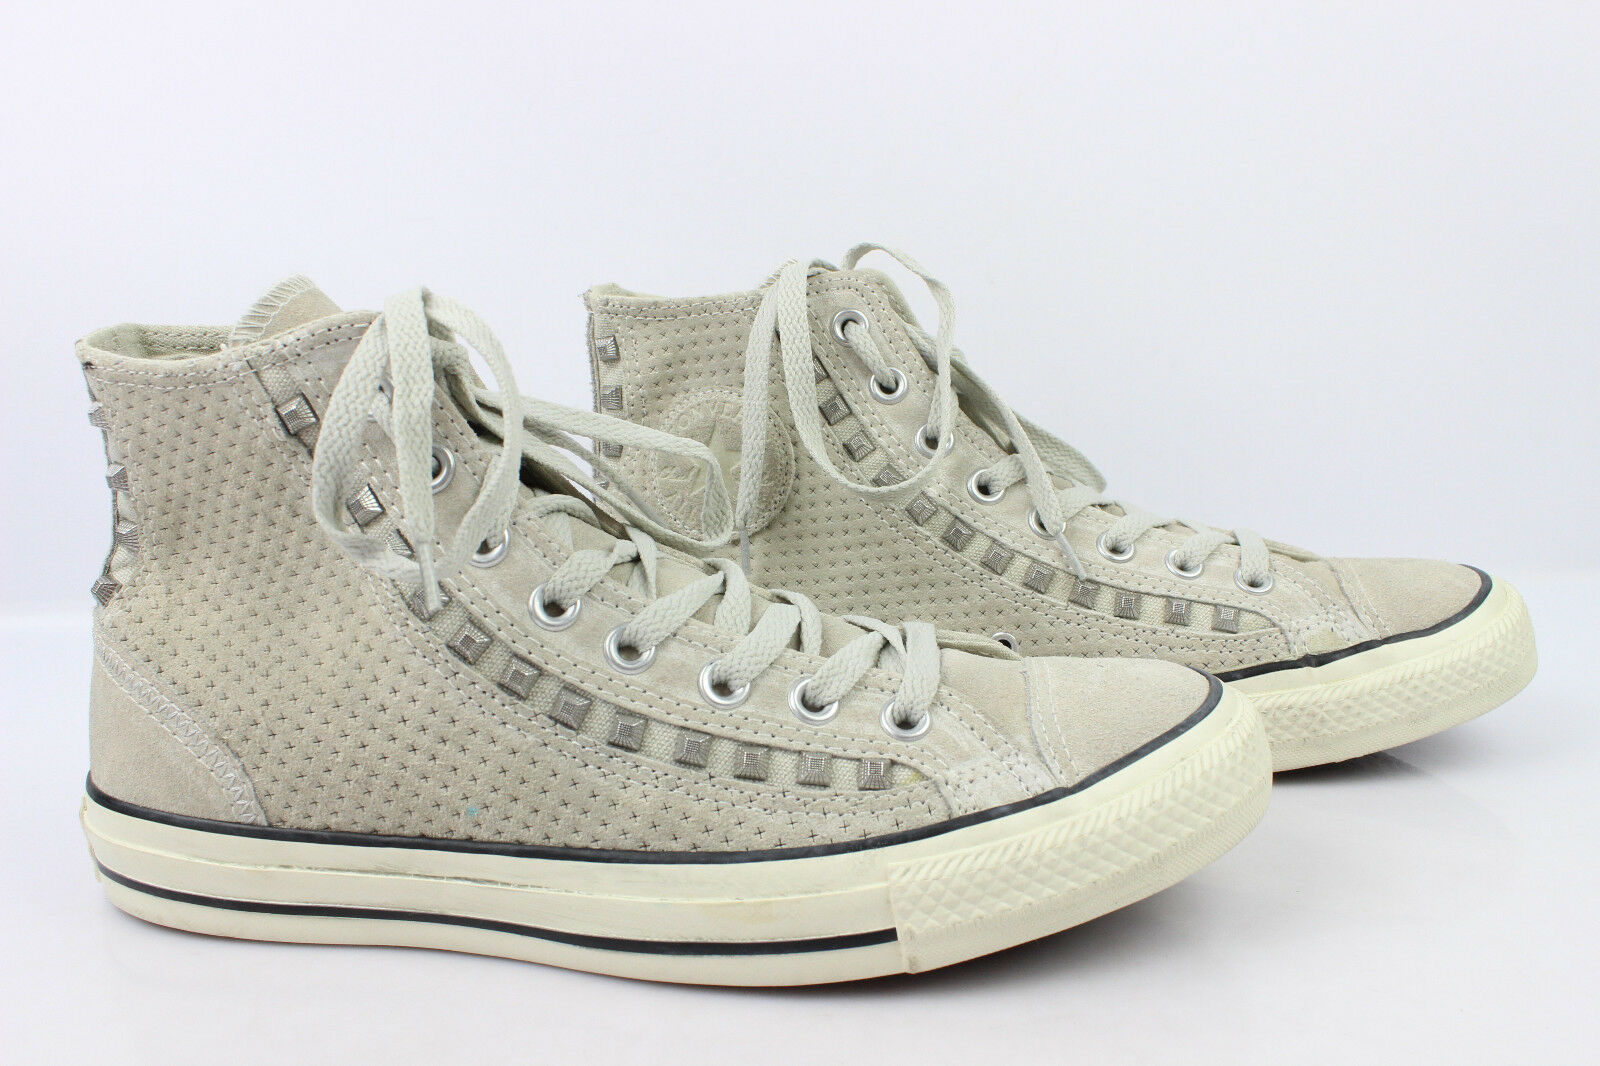 Baskets CONVERSE ALL Mastic STAR Daim Clouté Mastic ALL T 41,5 ETAT NEUF 504e9d